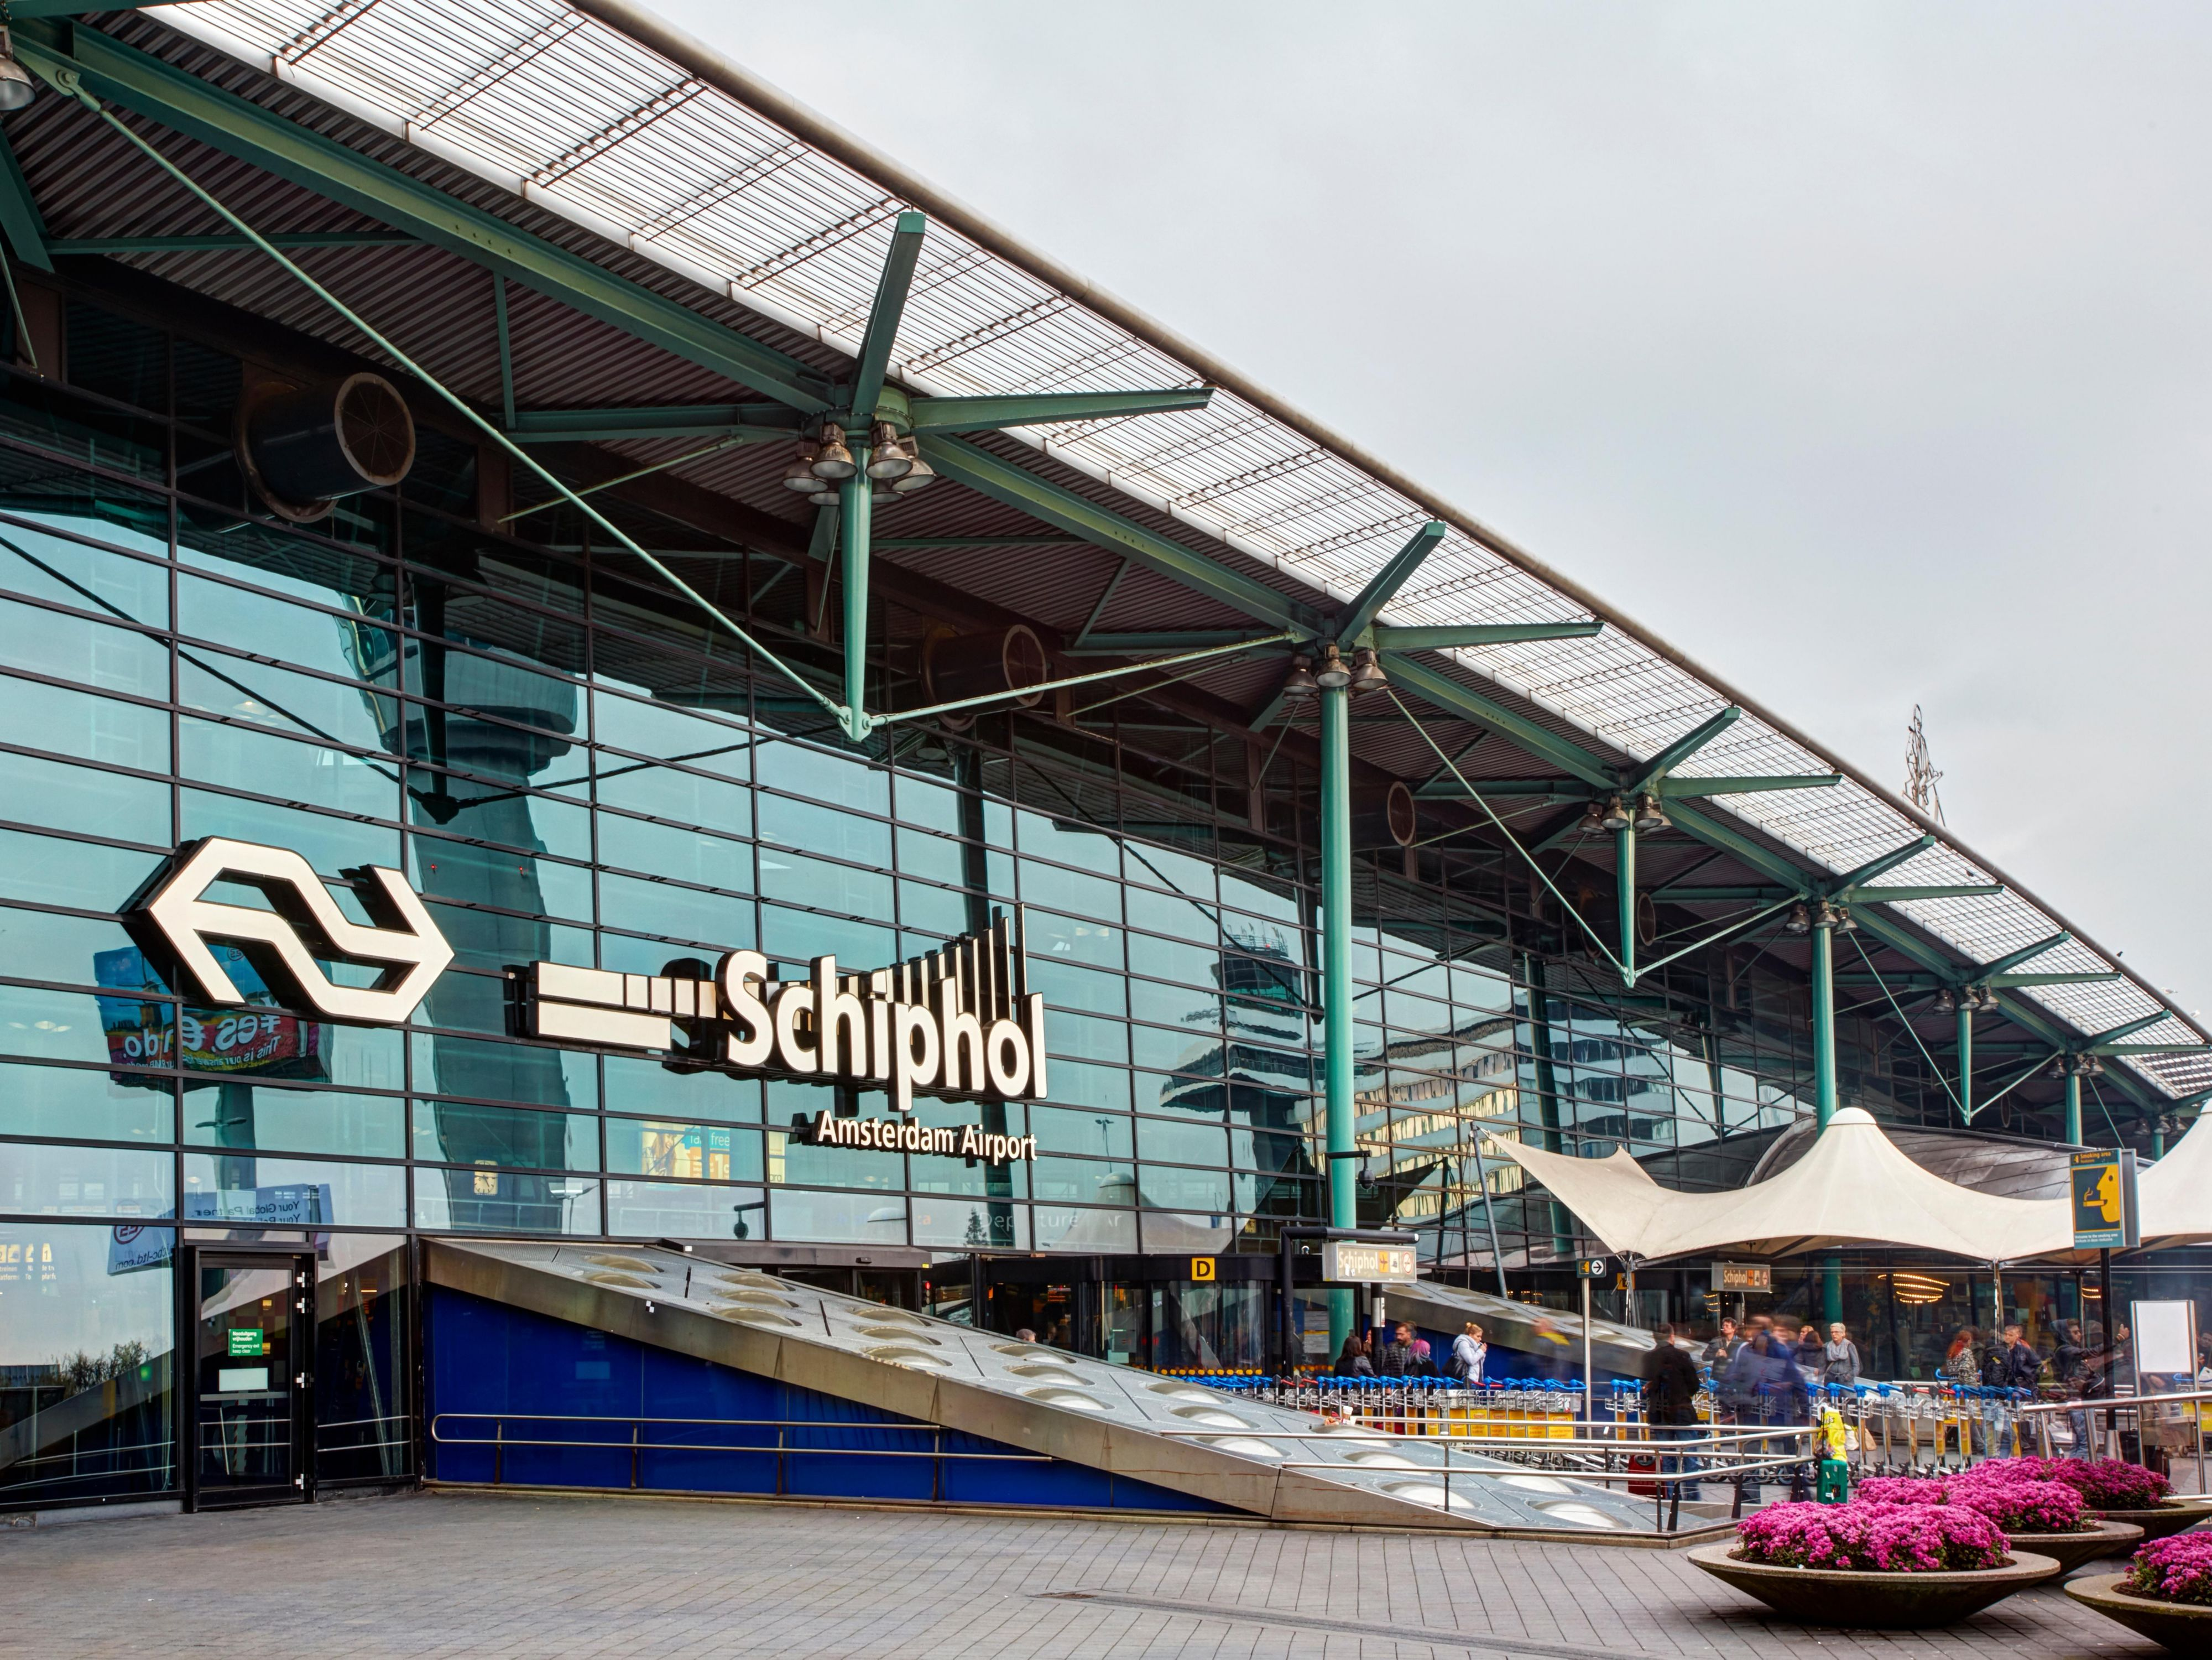 Amsterdam Airport Schiphol is just 10 minutes away from us